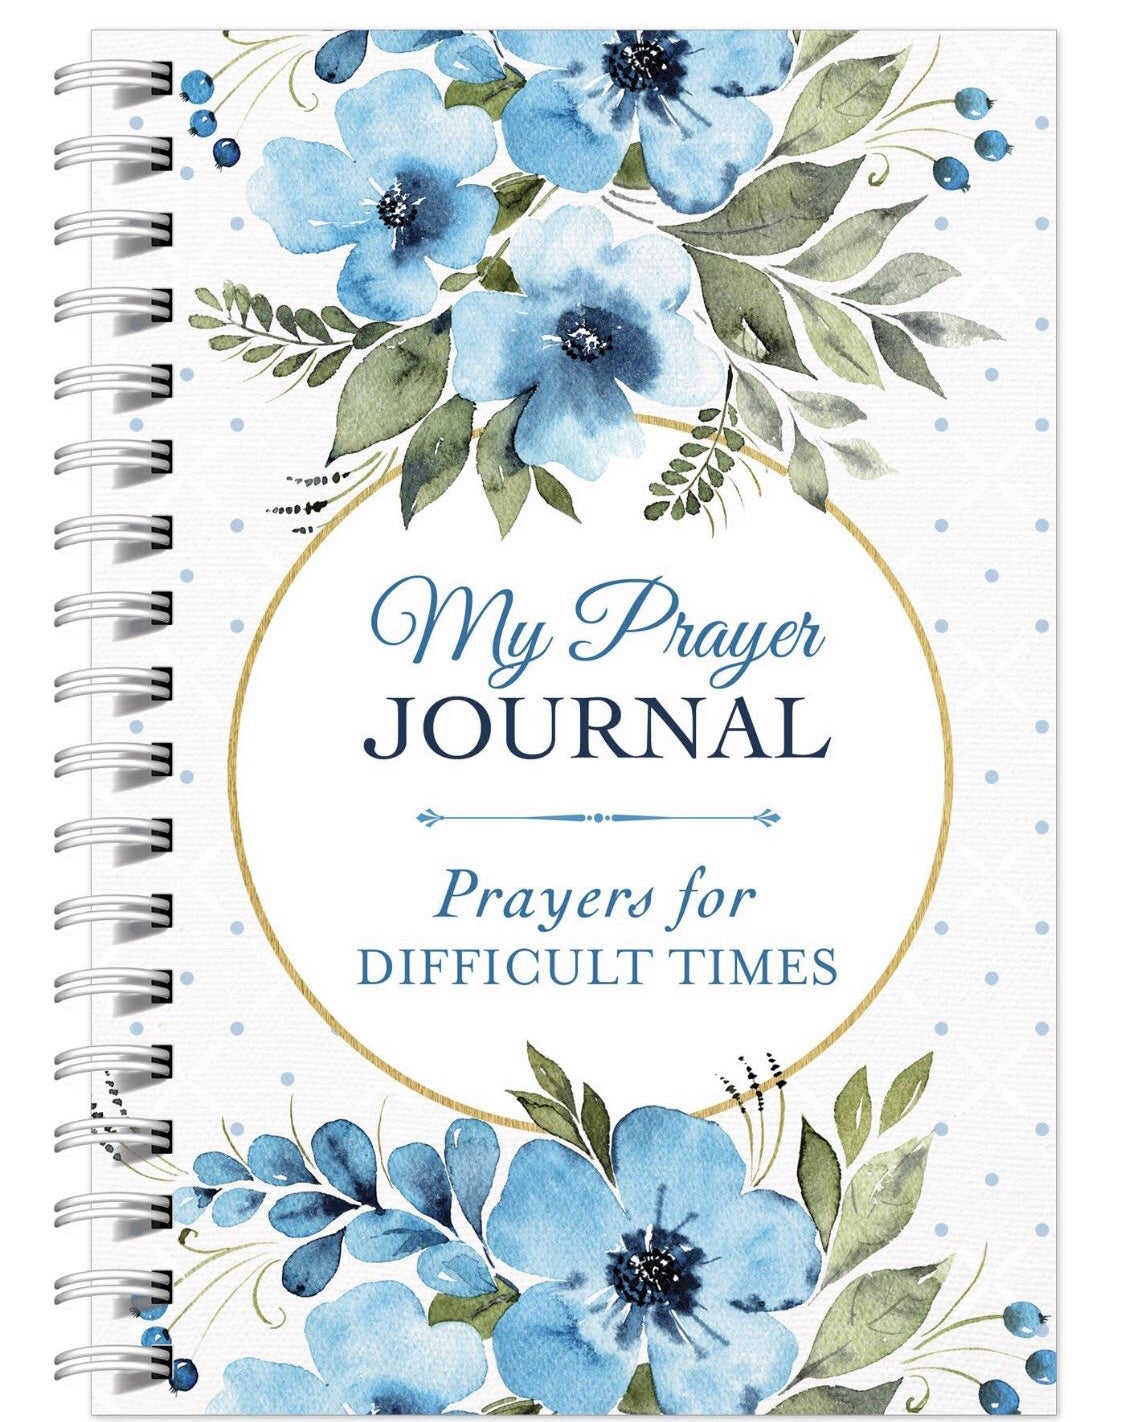 My Prayer Journal - Prayers for Difficult Times